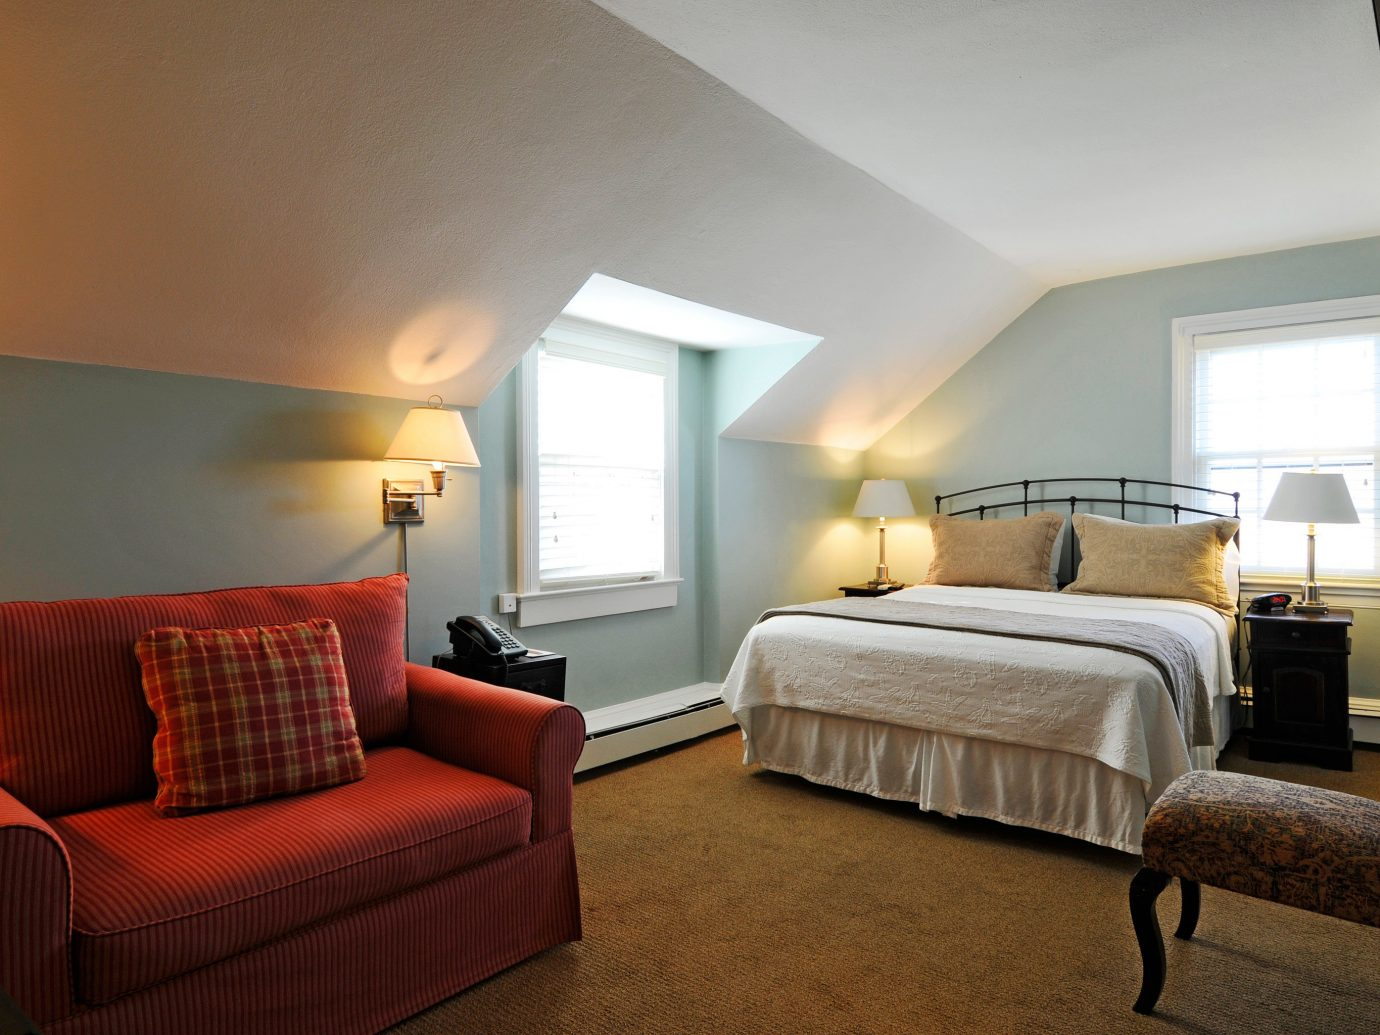 Beach Bedroom Boutique Inn Outdoor Activities South Fork The Hamptons indoor floor wall room bed ceiling sofa hotel property Suite living room estate real estate home interior design cottage apartment Villa furniture